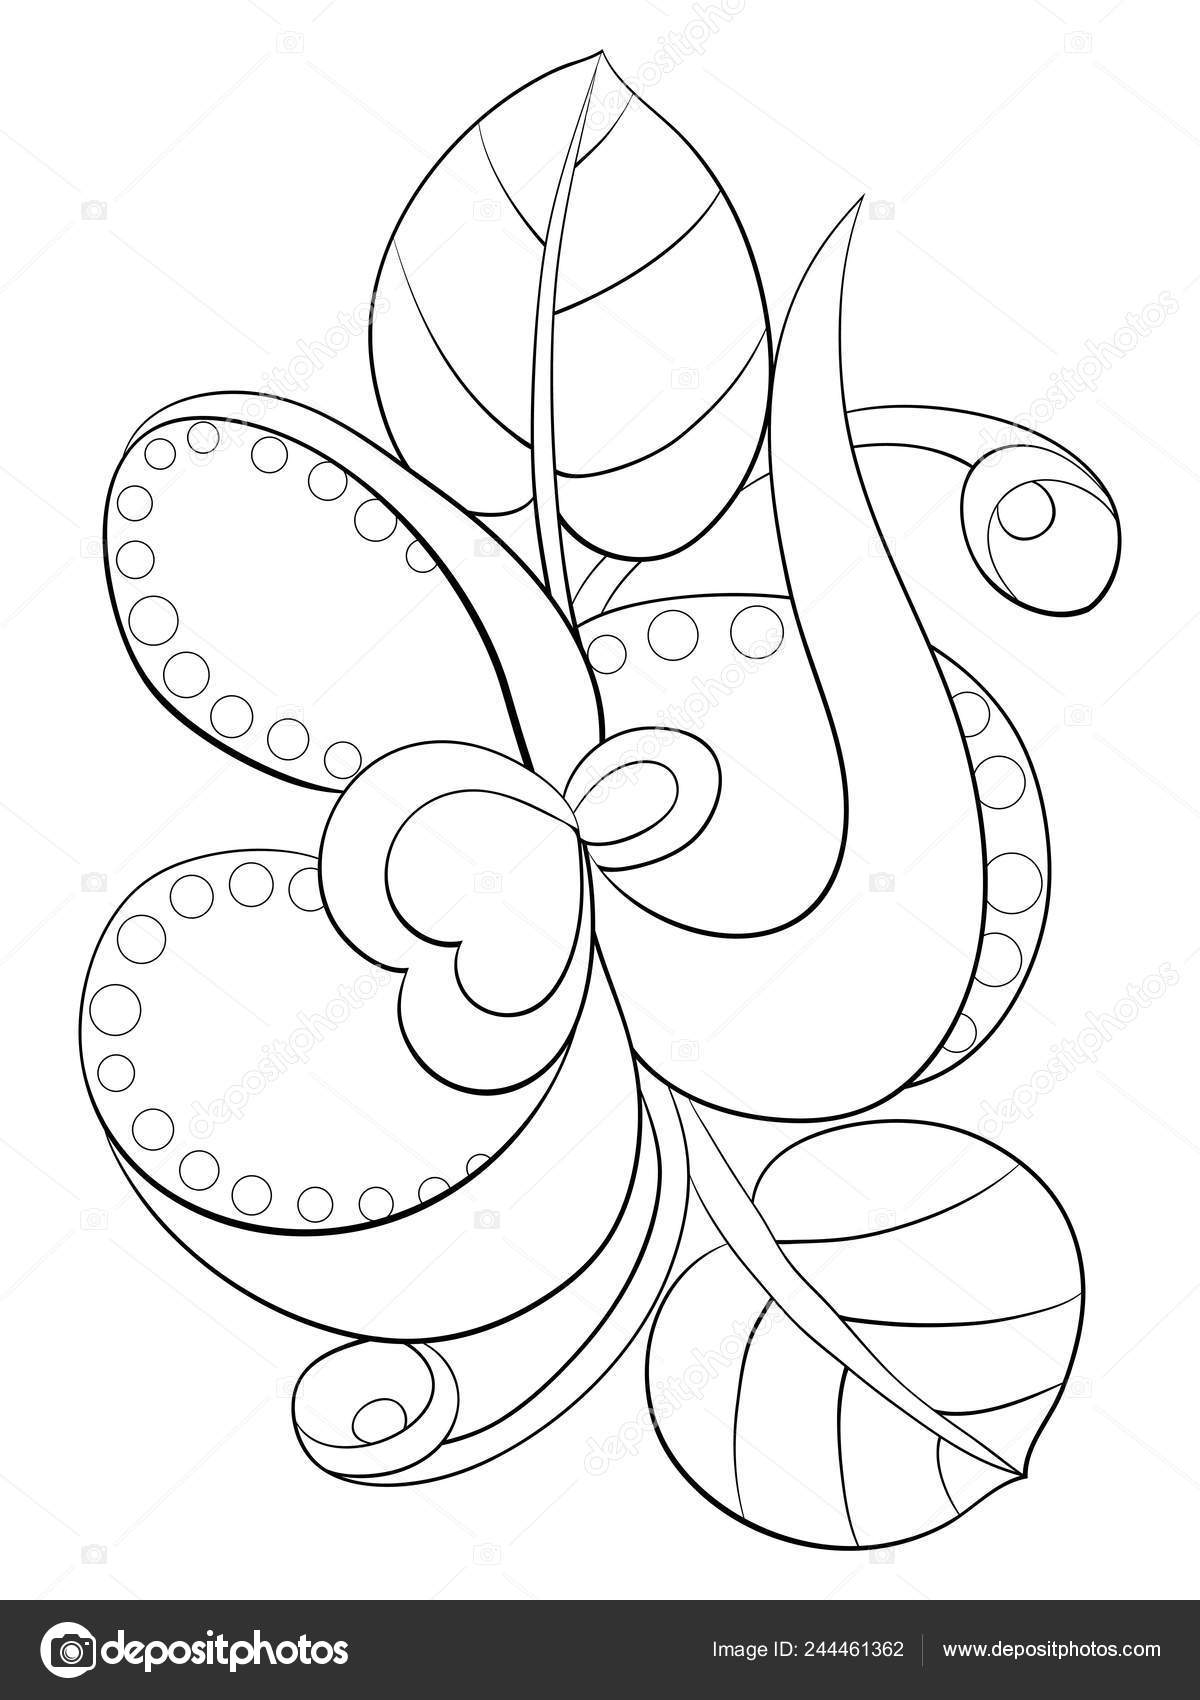 Abstract Flower Petals Leaves Image Relaxing Activity